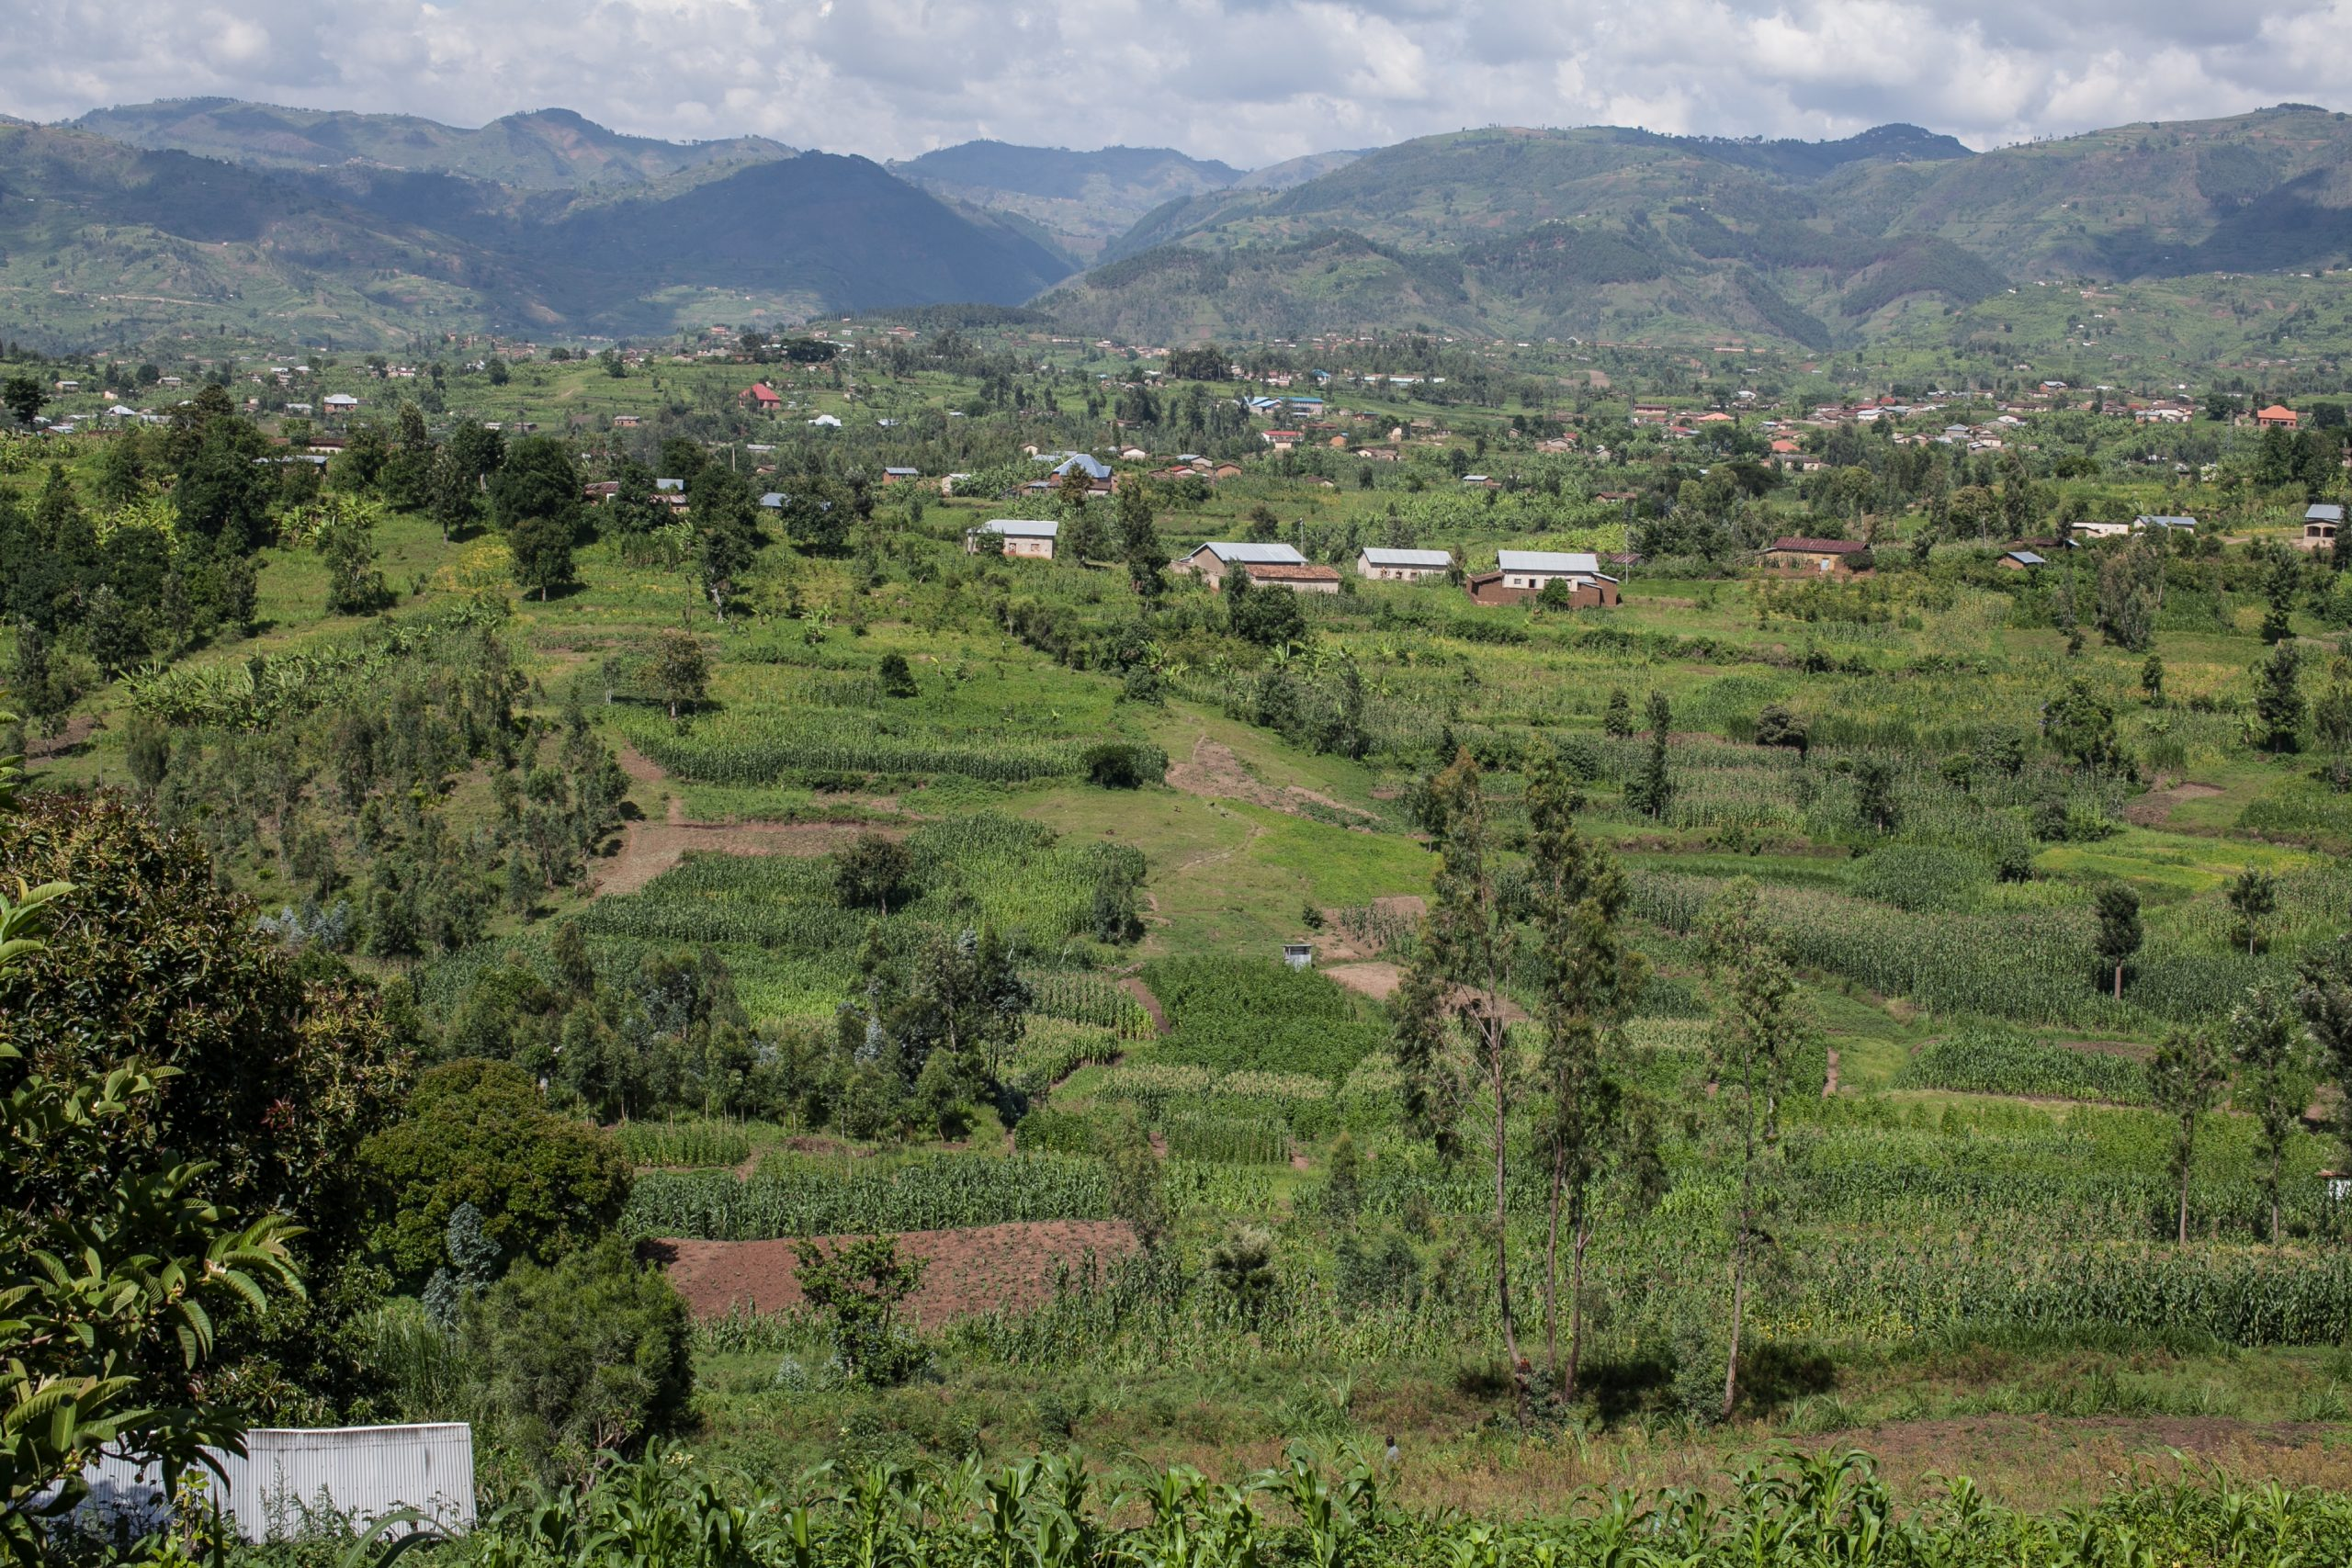 Onward and upward: Using a systems approach to unlock smallholder finance potential